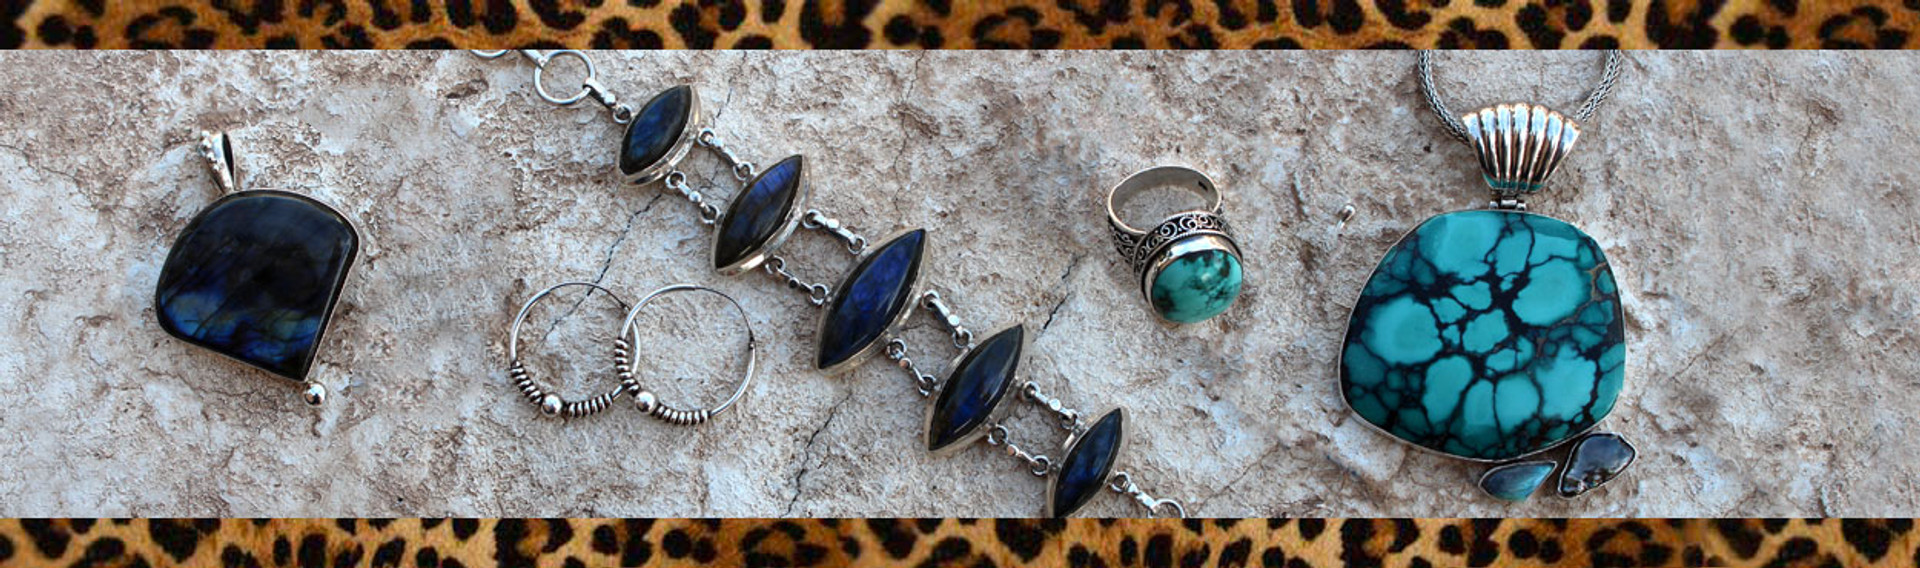 Sterling silver jewelry will add to any outfit.  Turquoise is great for summer.